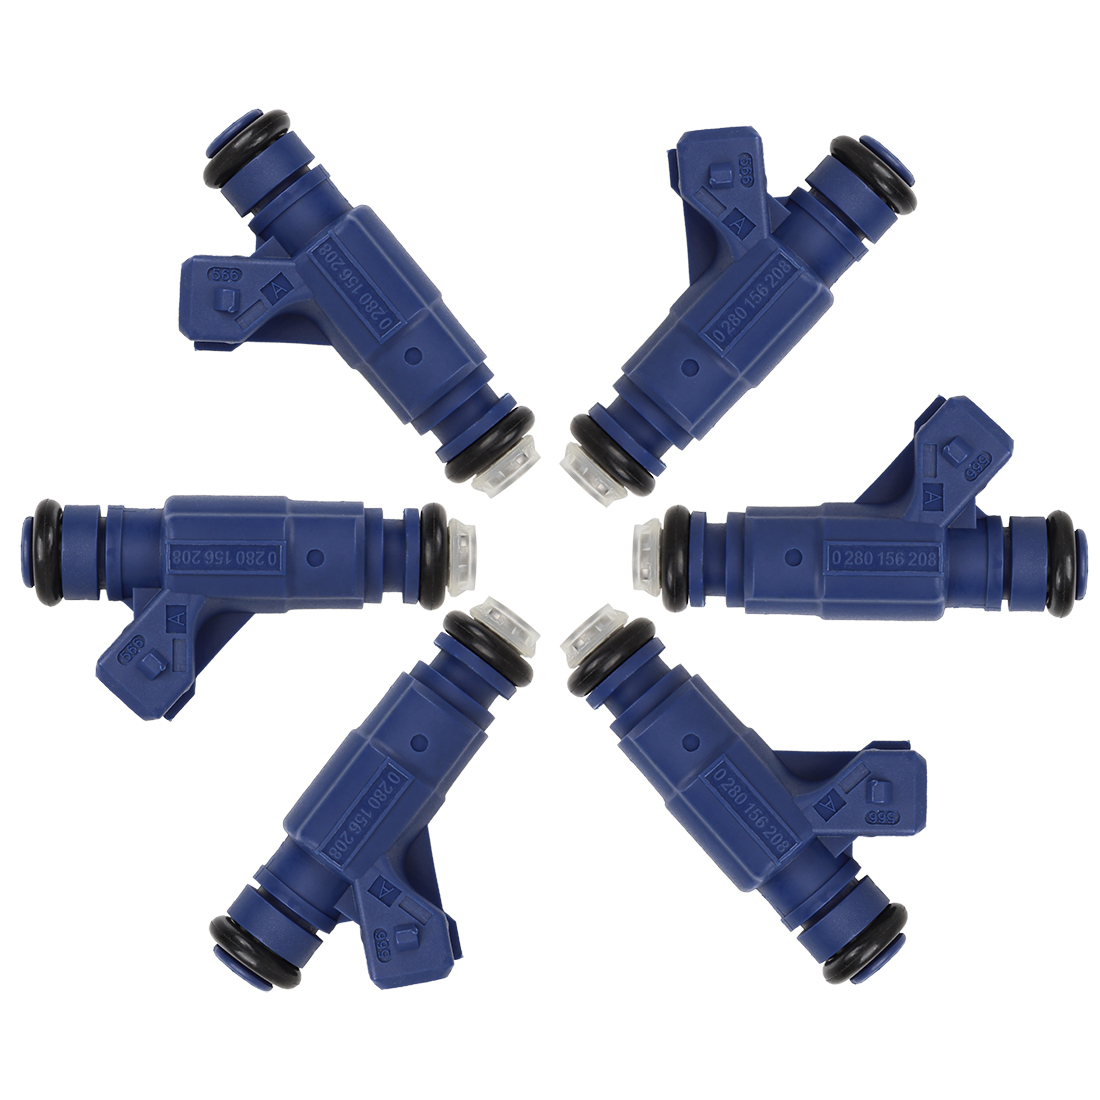 6pcs Fuel Injector for Polaris Sportsman 700 800 Ranger 700 800 RZR 800 EFI